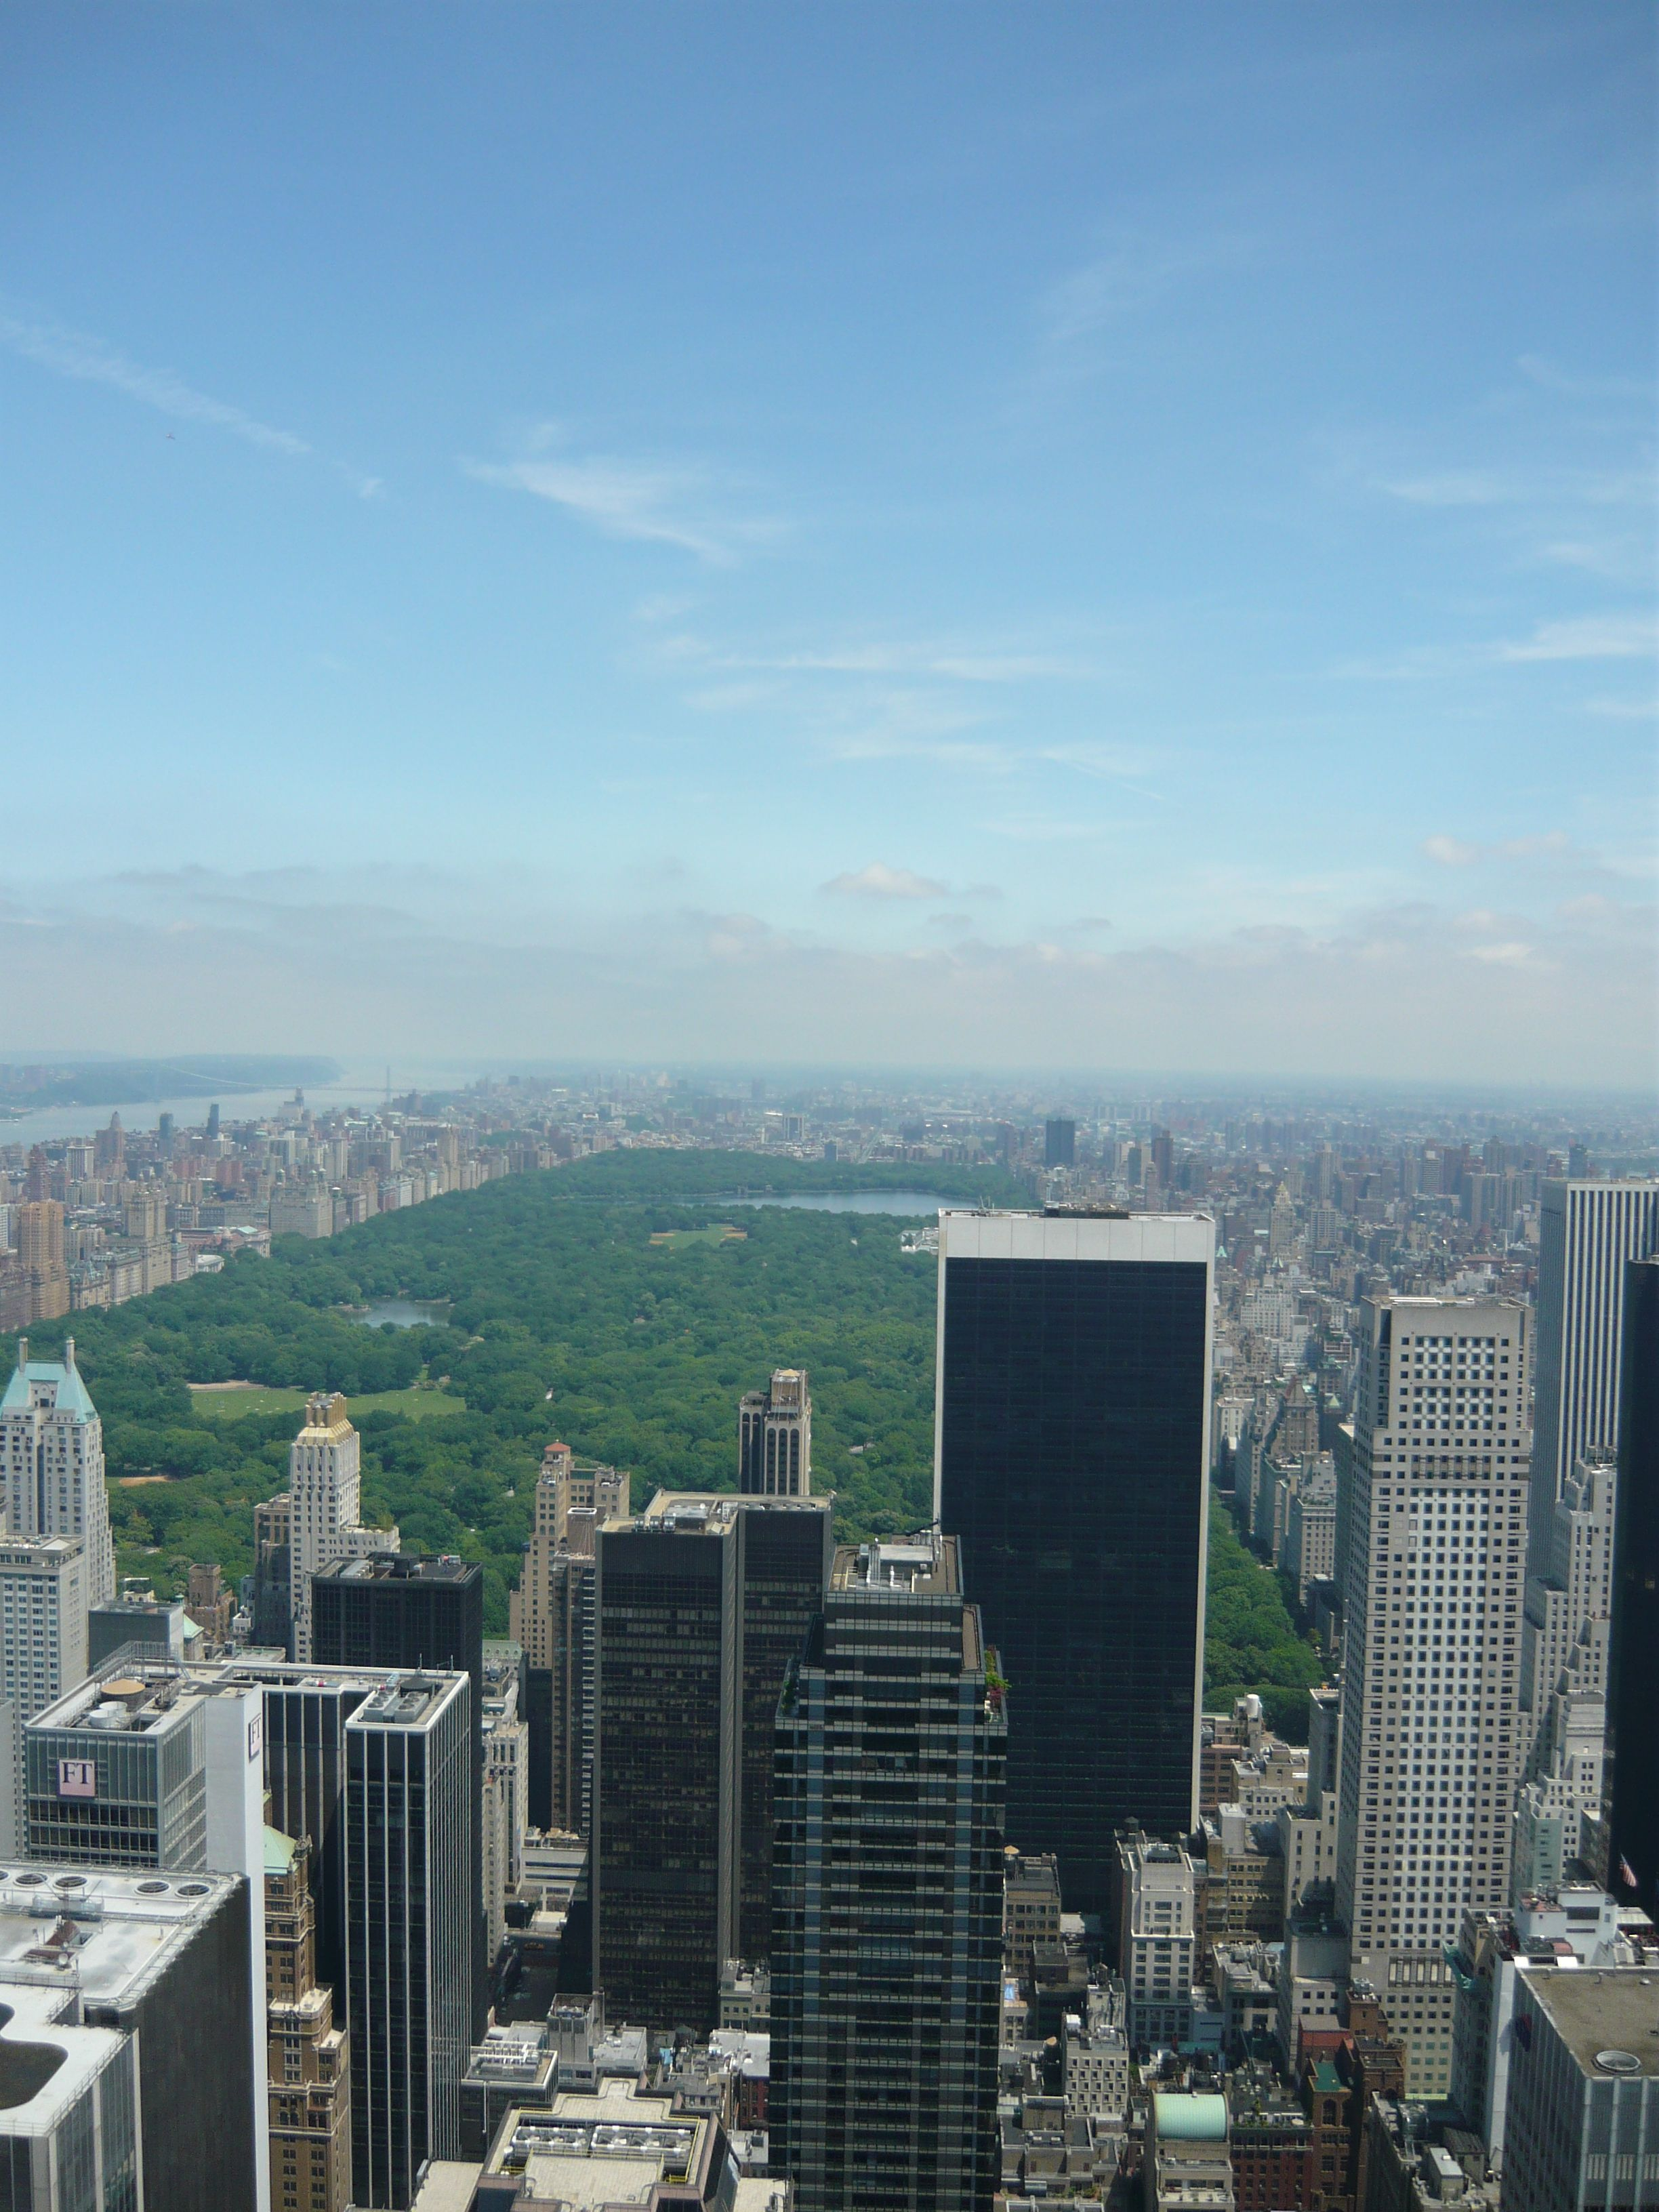 Uptown Manhattan And Central Park View From 30 Rock Central Park View San Francisco Skyline York City